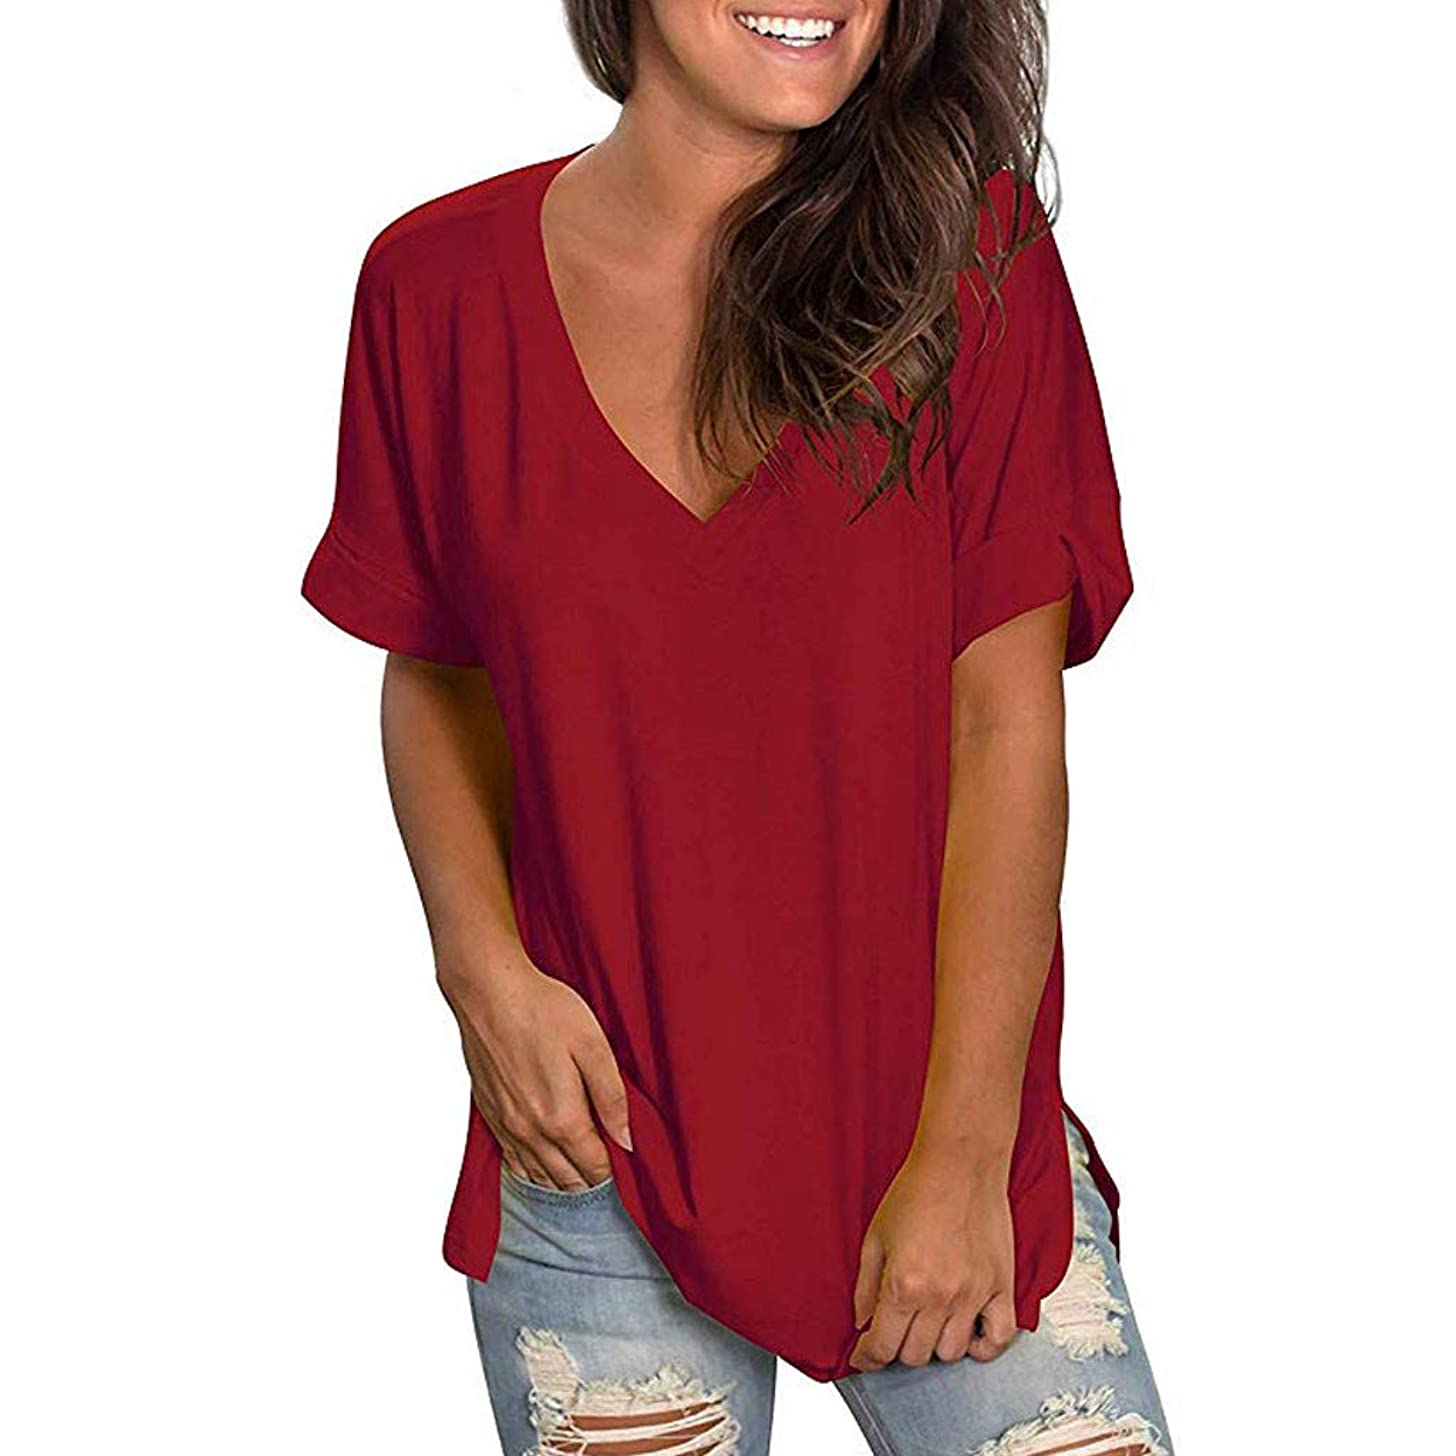 Nadition Summer Loose T-Shirt ? Women Simple Solid V Neck Short Sleeve Shirt Casual Comfy Tee Shirt Tops Blouse